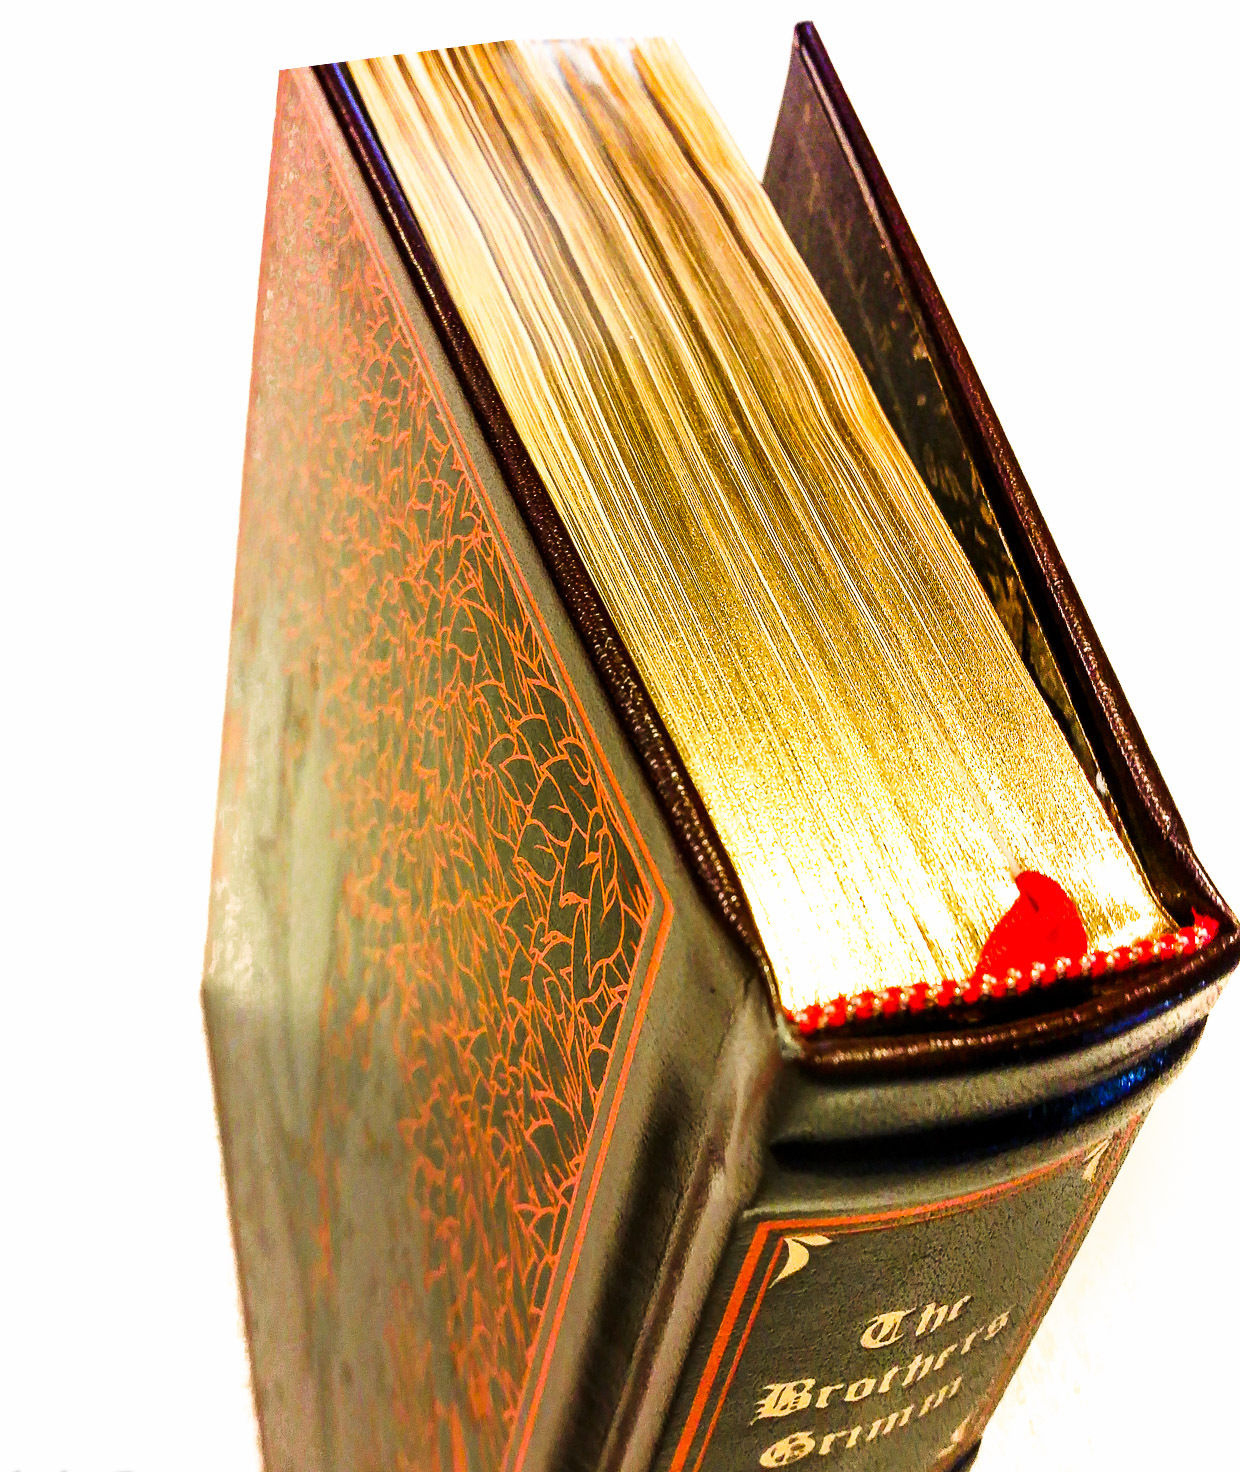 Grimm's Complete Fairy Tales (Leather Bound) by Jacob Grimm image